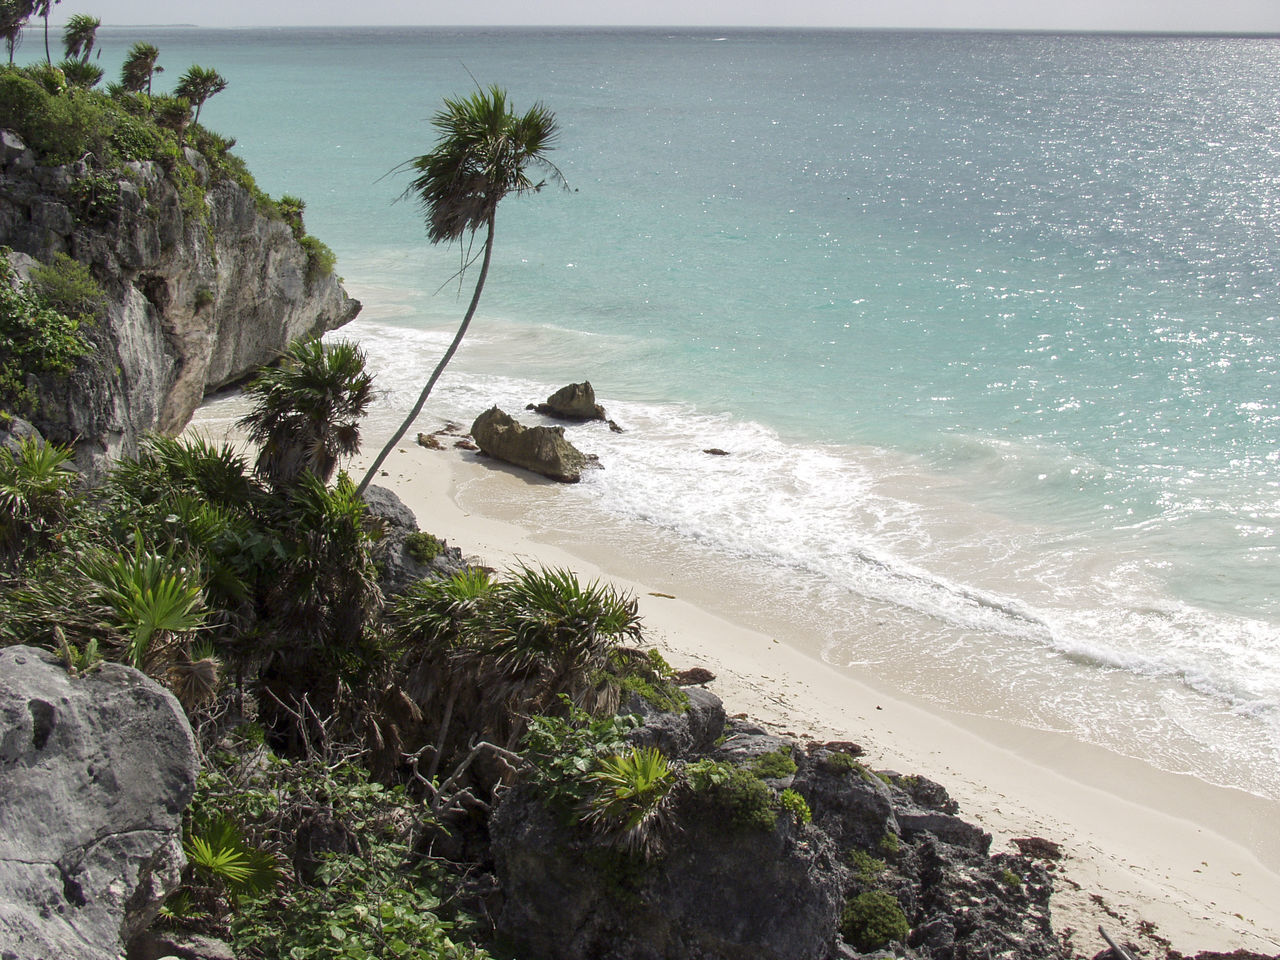 Beach Beauty In Nature Cliff Coastline Horizon Over Water Nature No People Outdoors Plant Remote Scenics Sea Shore Sky Tranquil Scene Tranquility Tulum Tulum , Rivera Maya. Tulum Beach Water